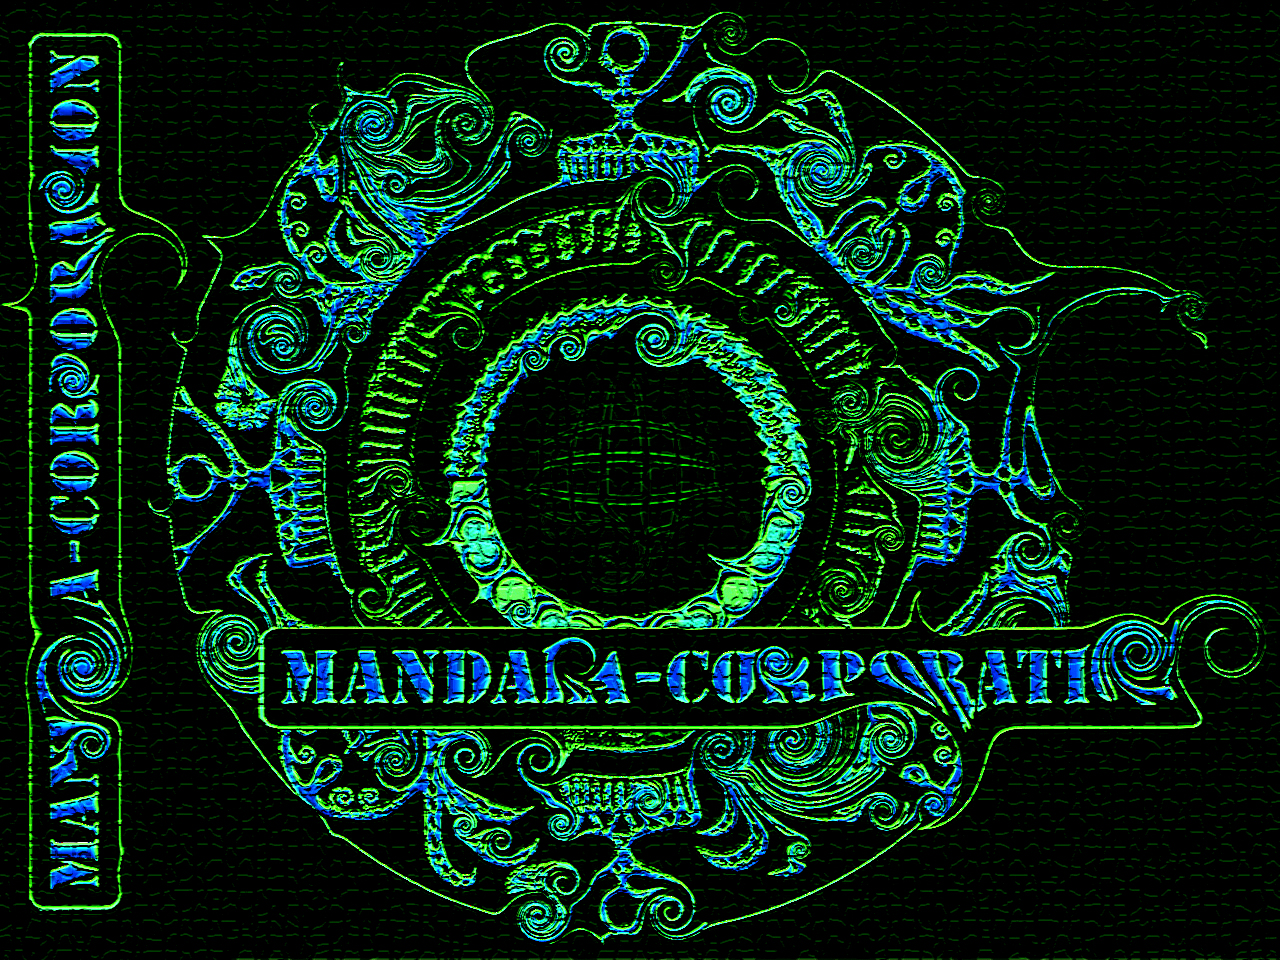 2013 mandala corporation all rights reserved 1280x960